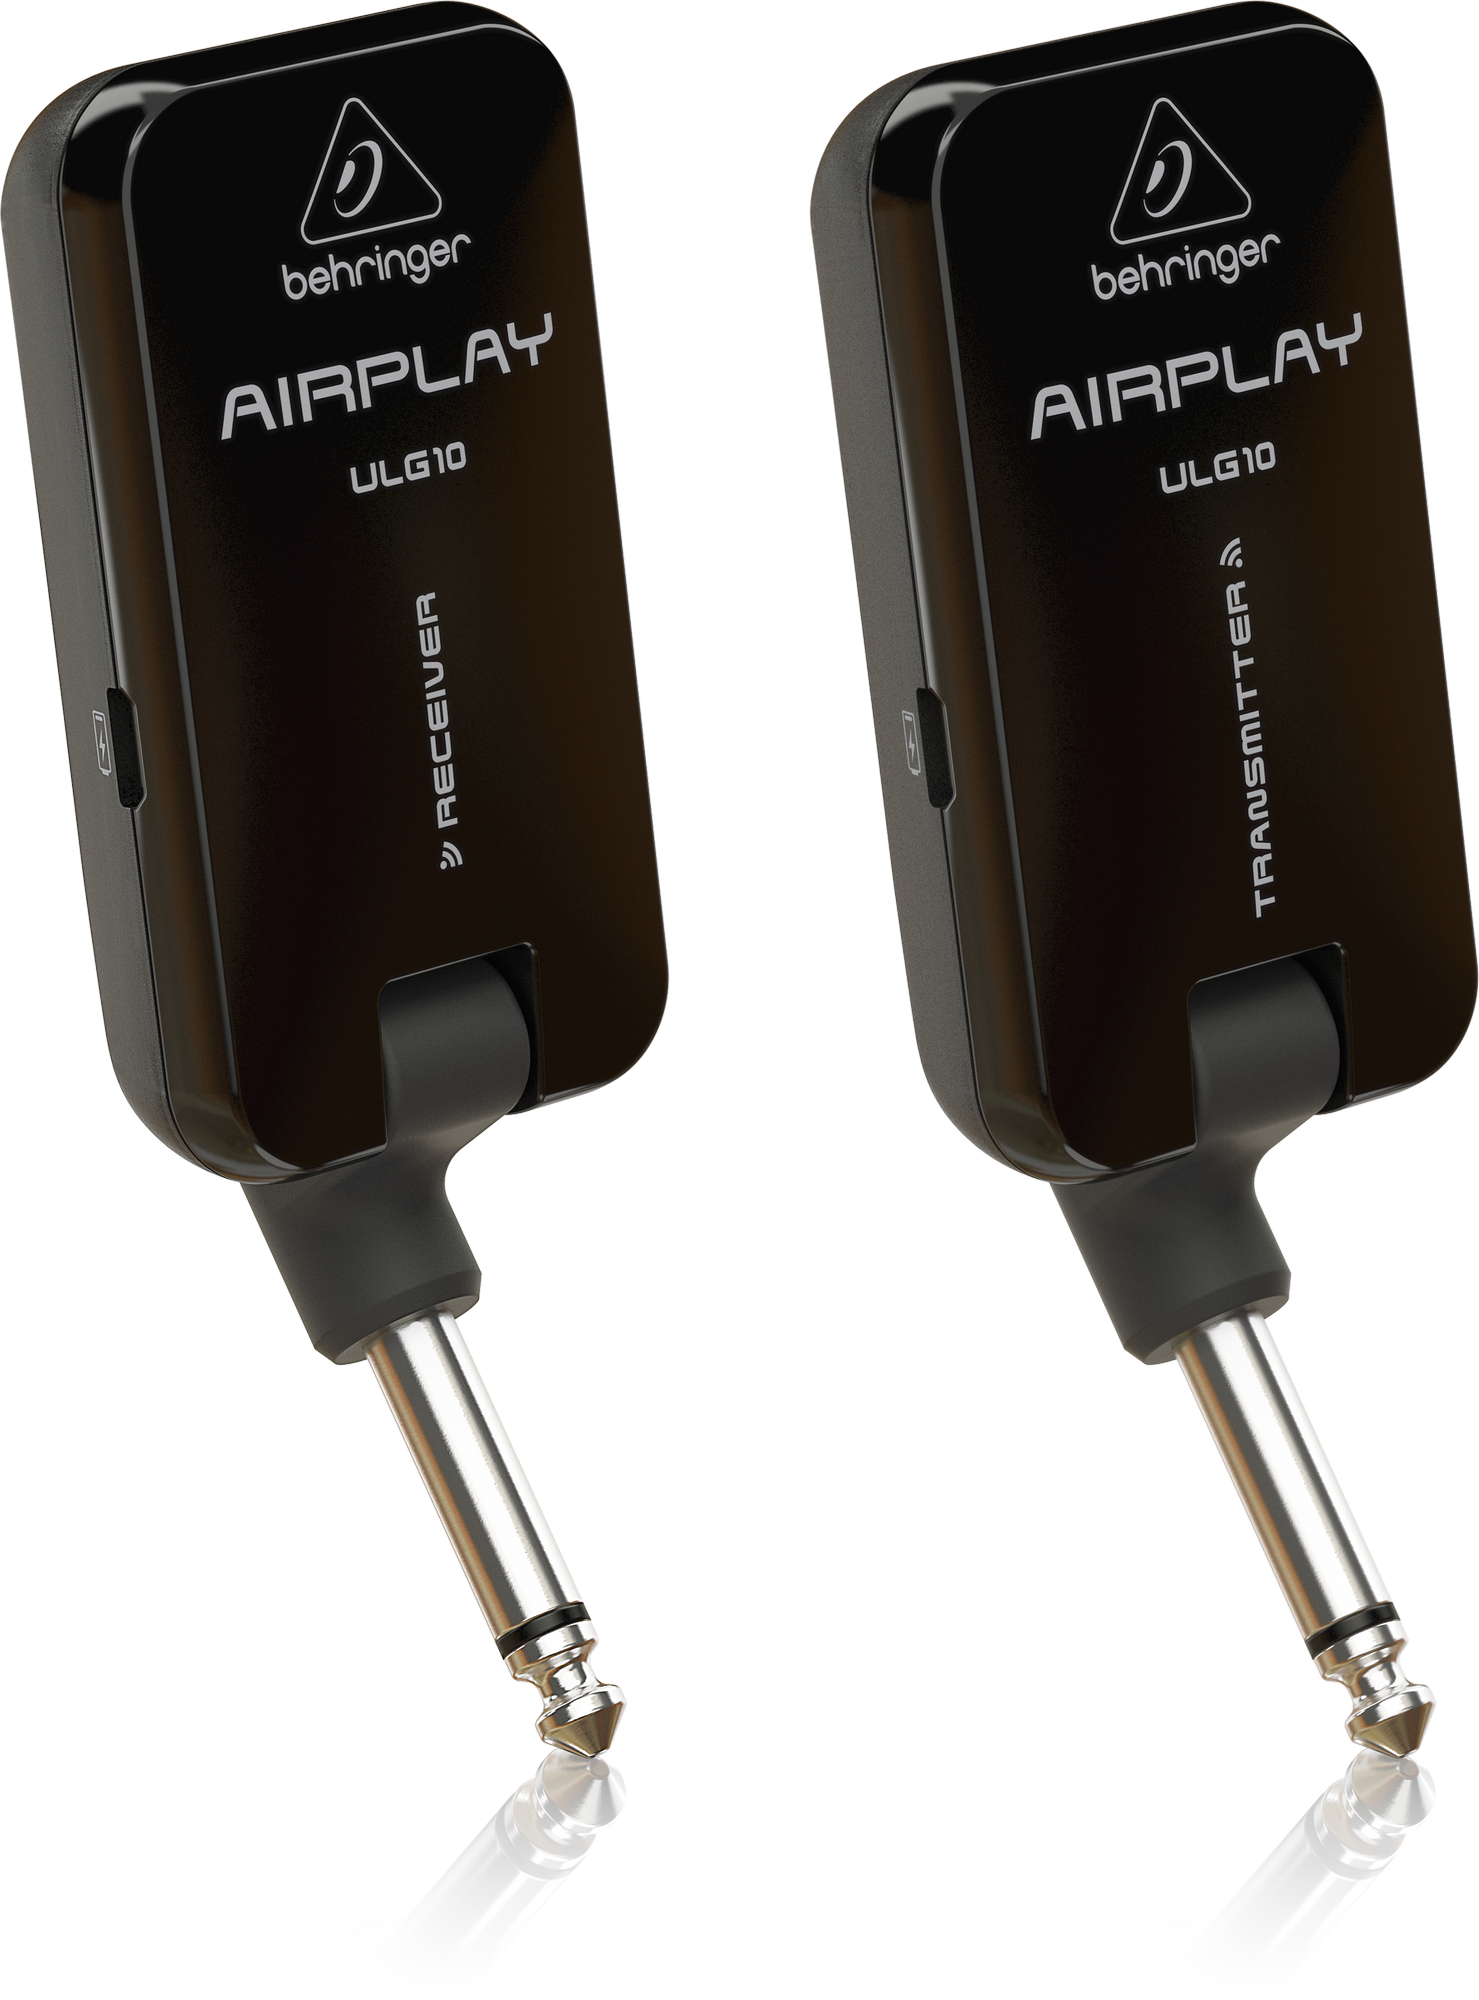 Behringer AIRPLAY GUITAR ULG10 - Wireless sender/receiver